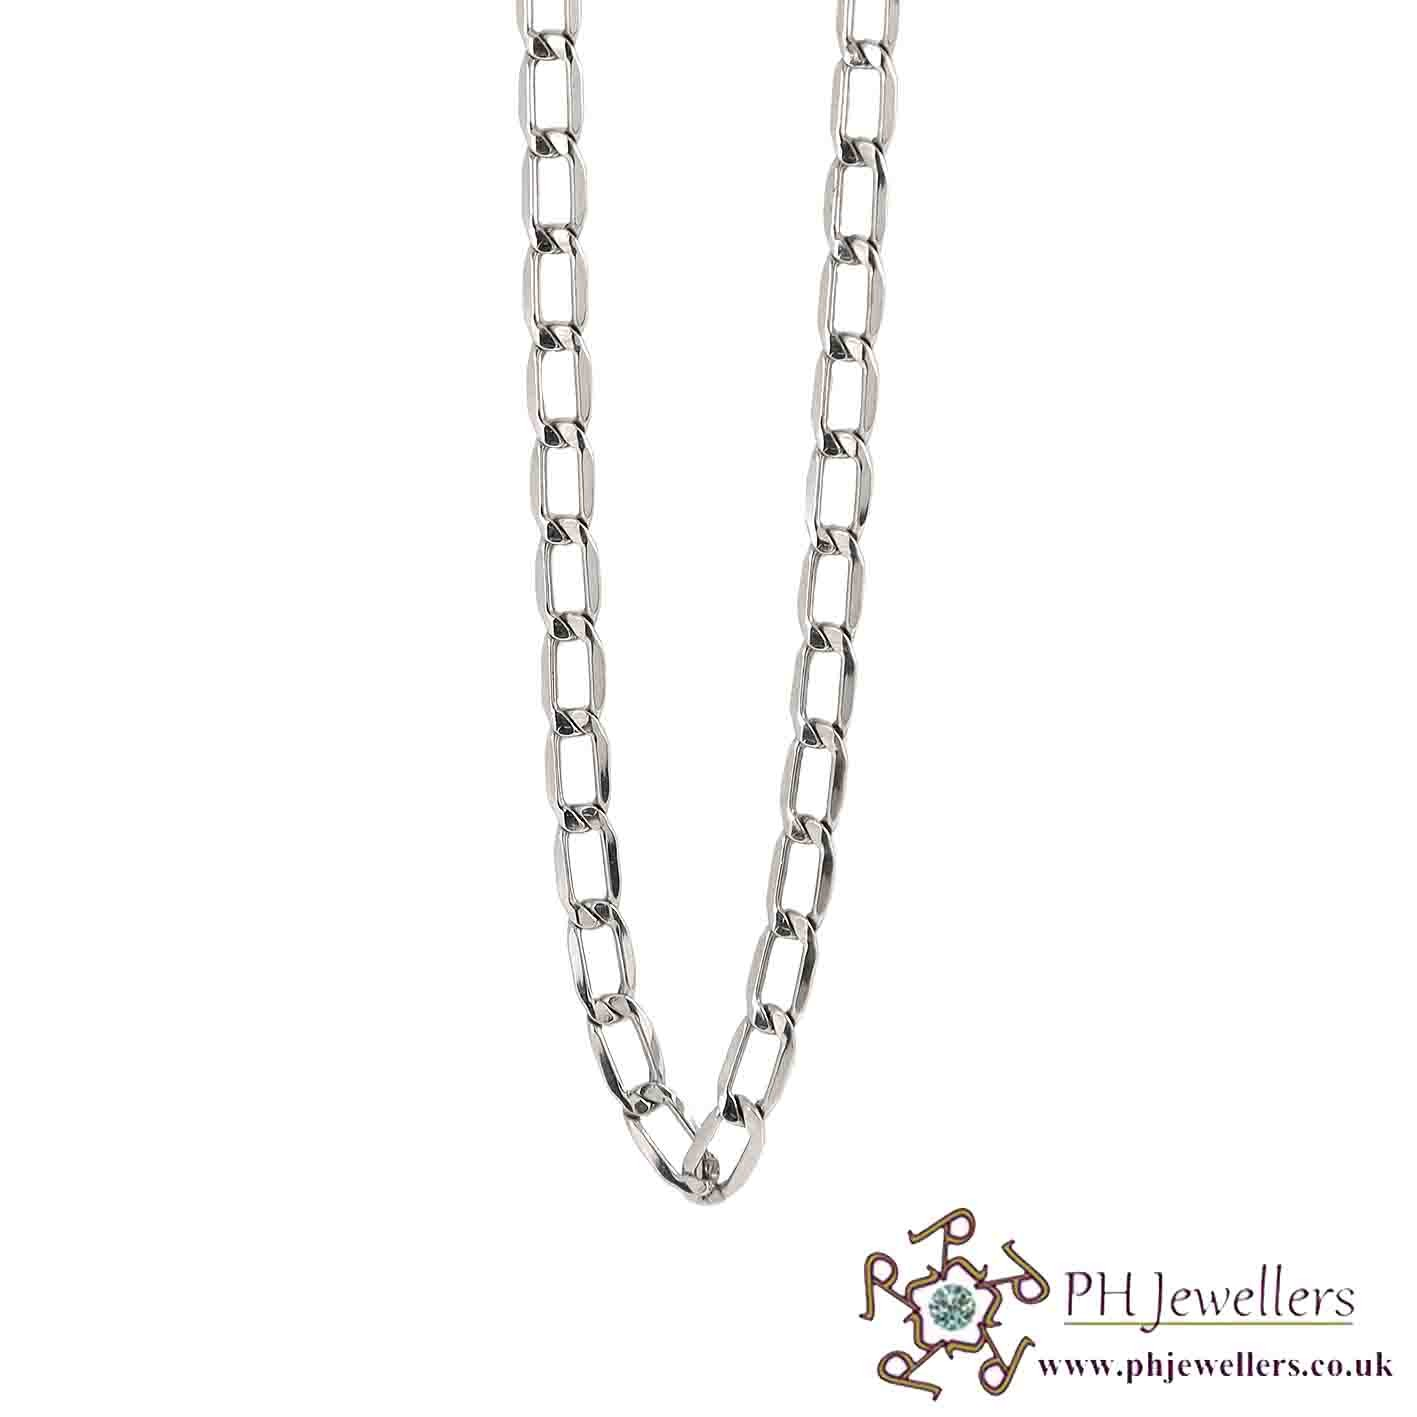 18CT 750 Hallmark White Gold Curb Chain WGC3